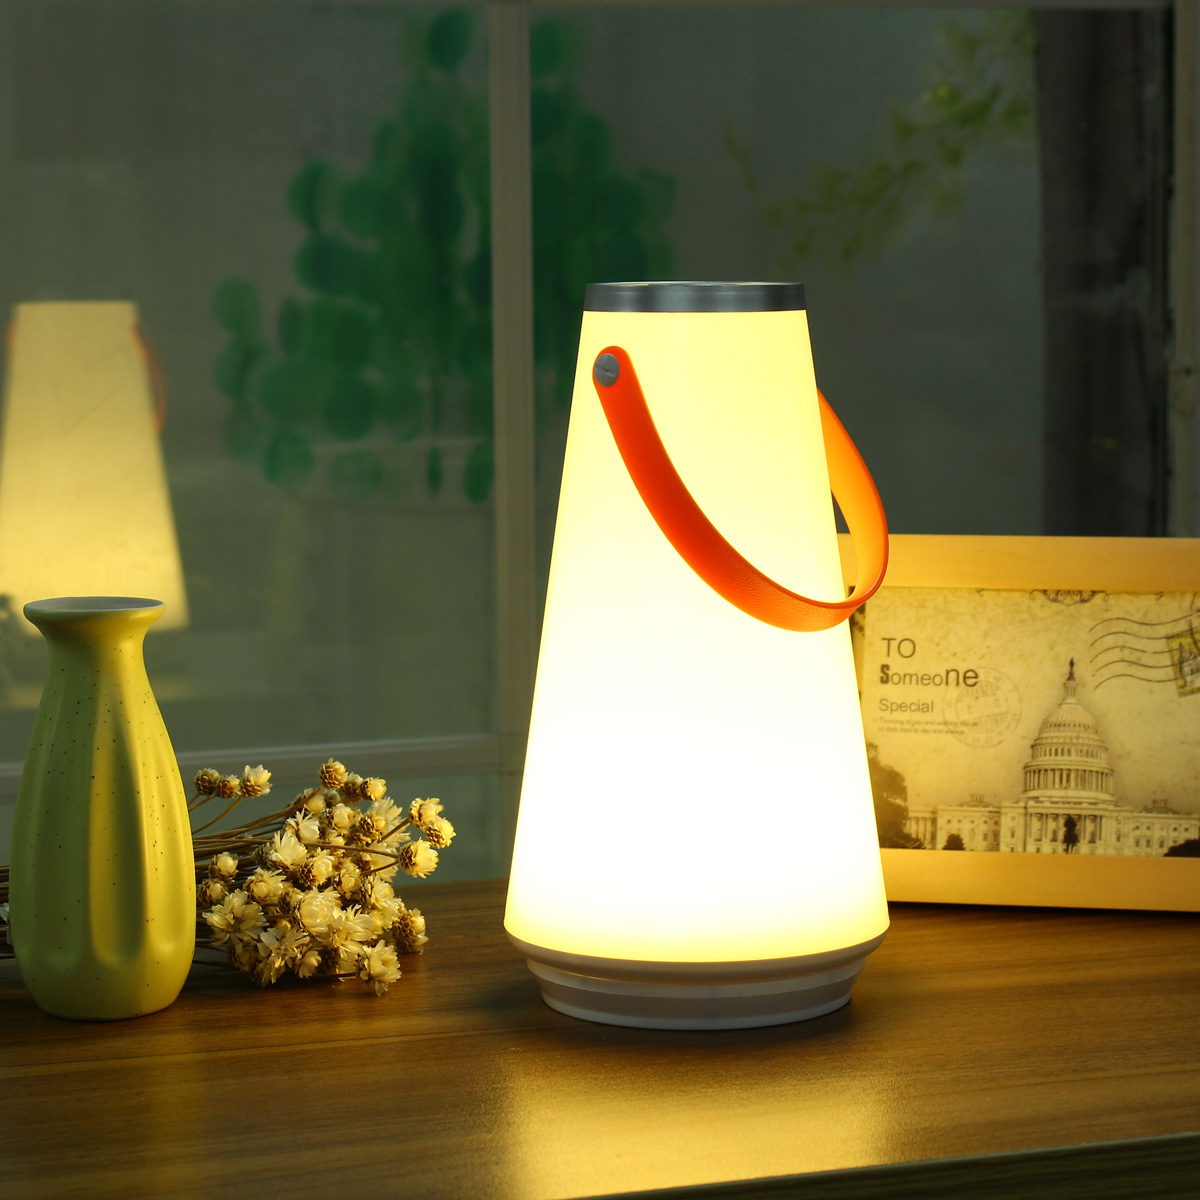 LED Portable Hiking Camping Tent Lantern Night Light USB Rechargeable Dimmable Bedroom Night Lighting Hanging Lamp